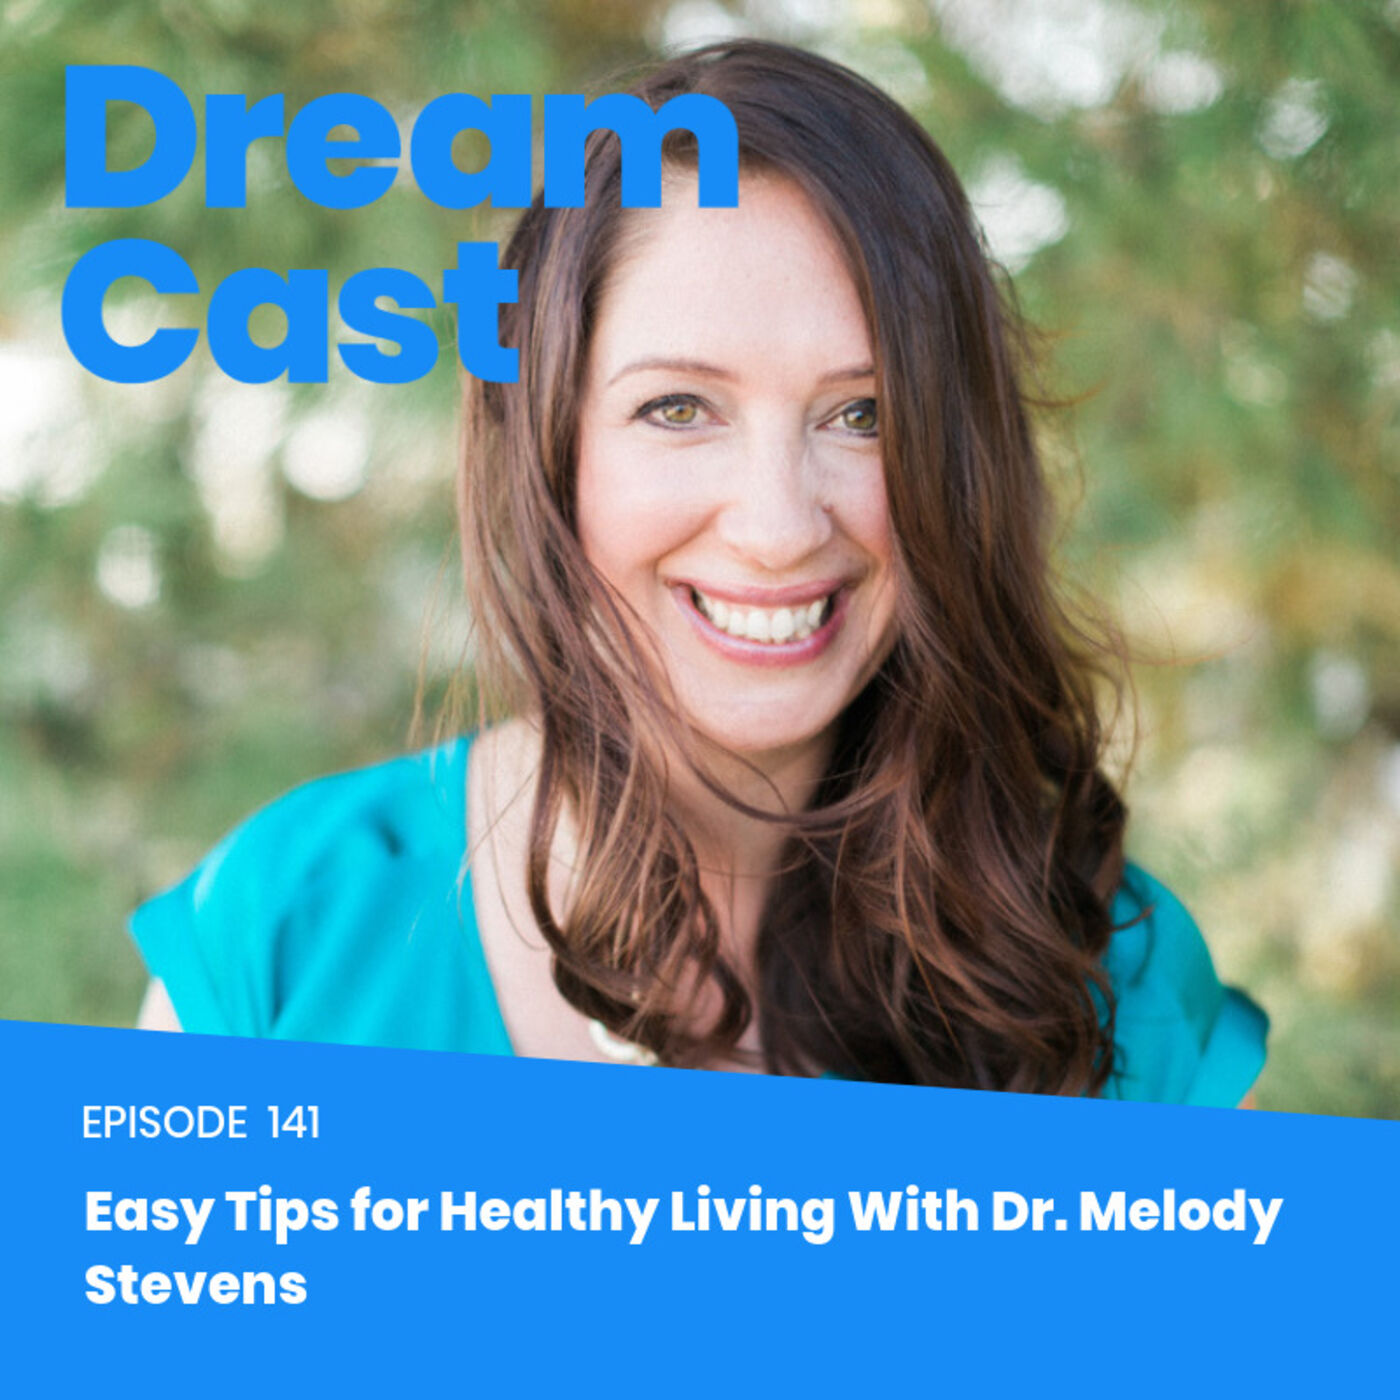 Episode 141 - Easy Tips for Healthy Living with Dr. Melody Stevens